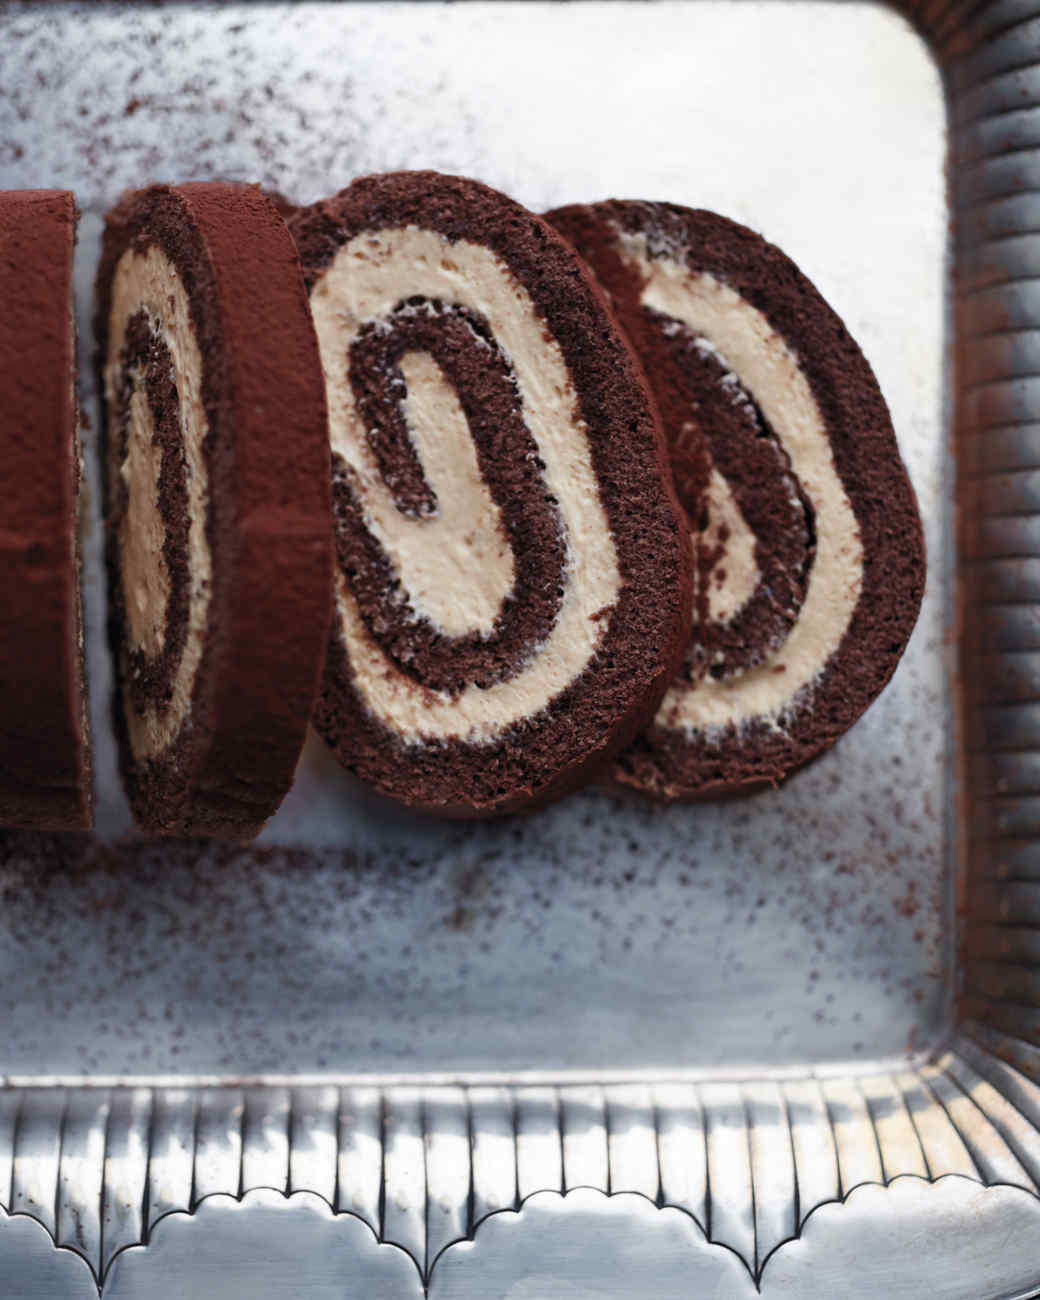 chocolate-swiss-rolls-025-d112571.jpg